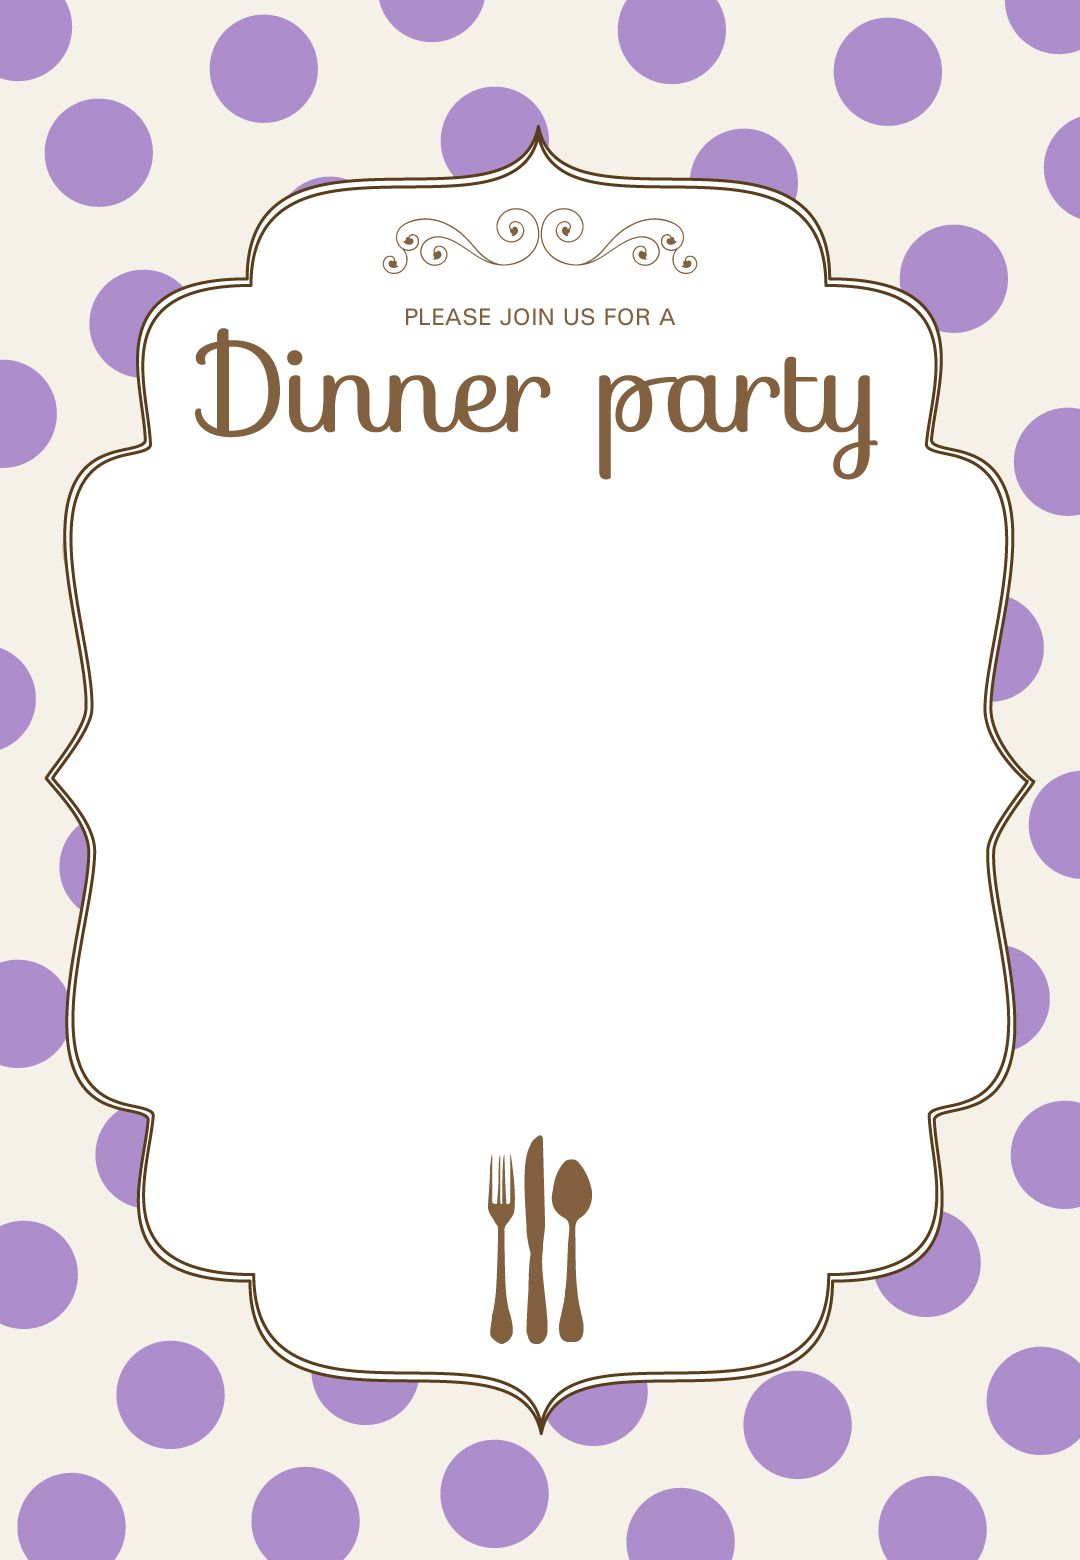 photograph regarding Printable Invitations titled Free of charge Printable Clic Evening meal Social gathering Invitation Social gathering recommendations